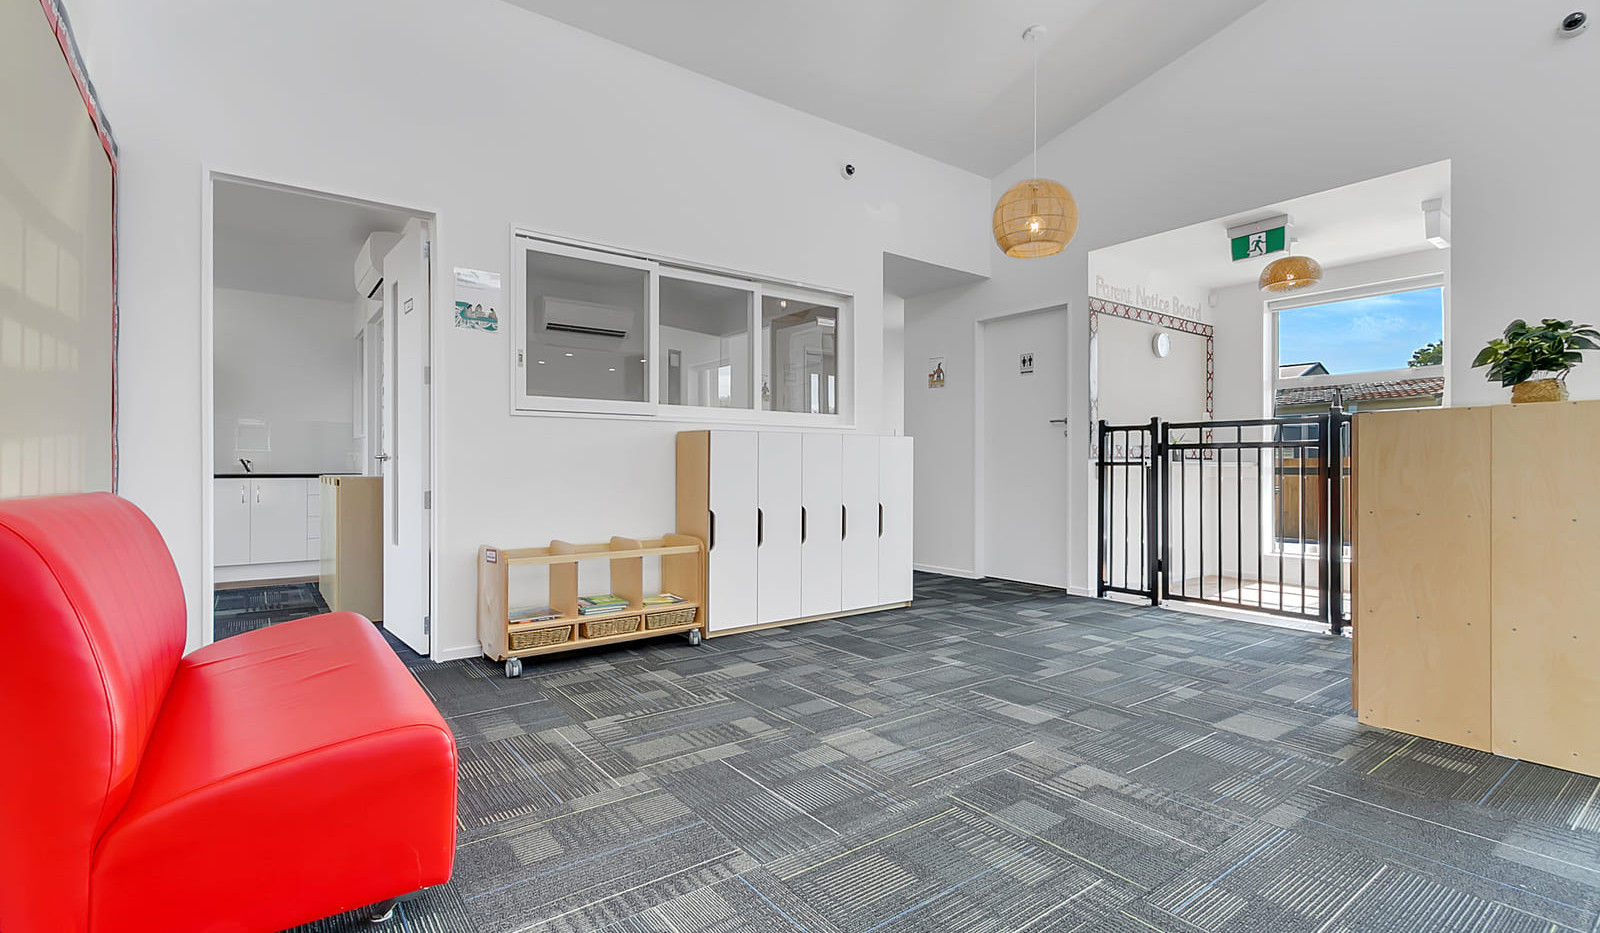 Clendon Kids Childcare Centre 10.jpg